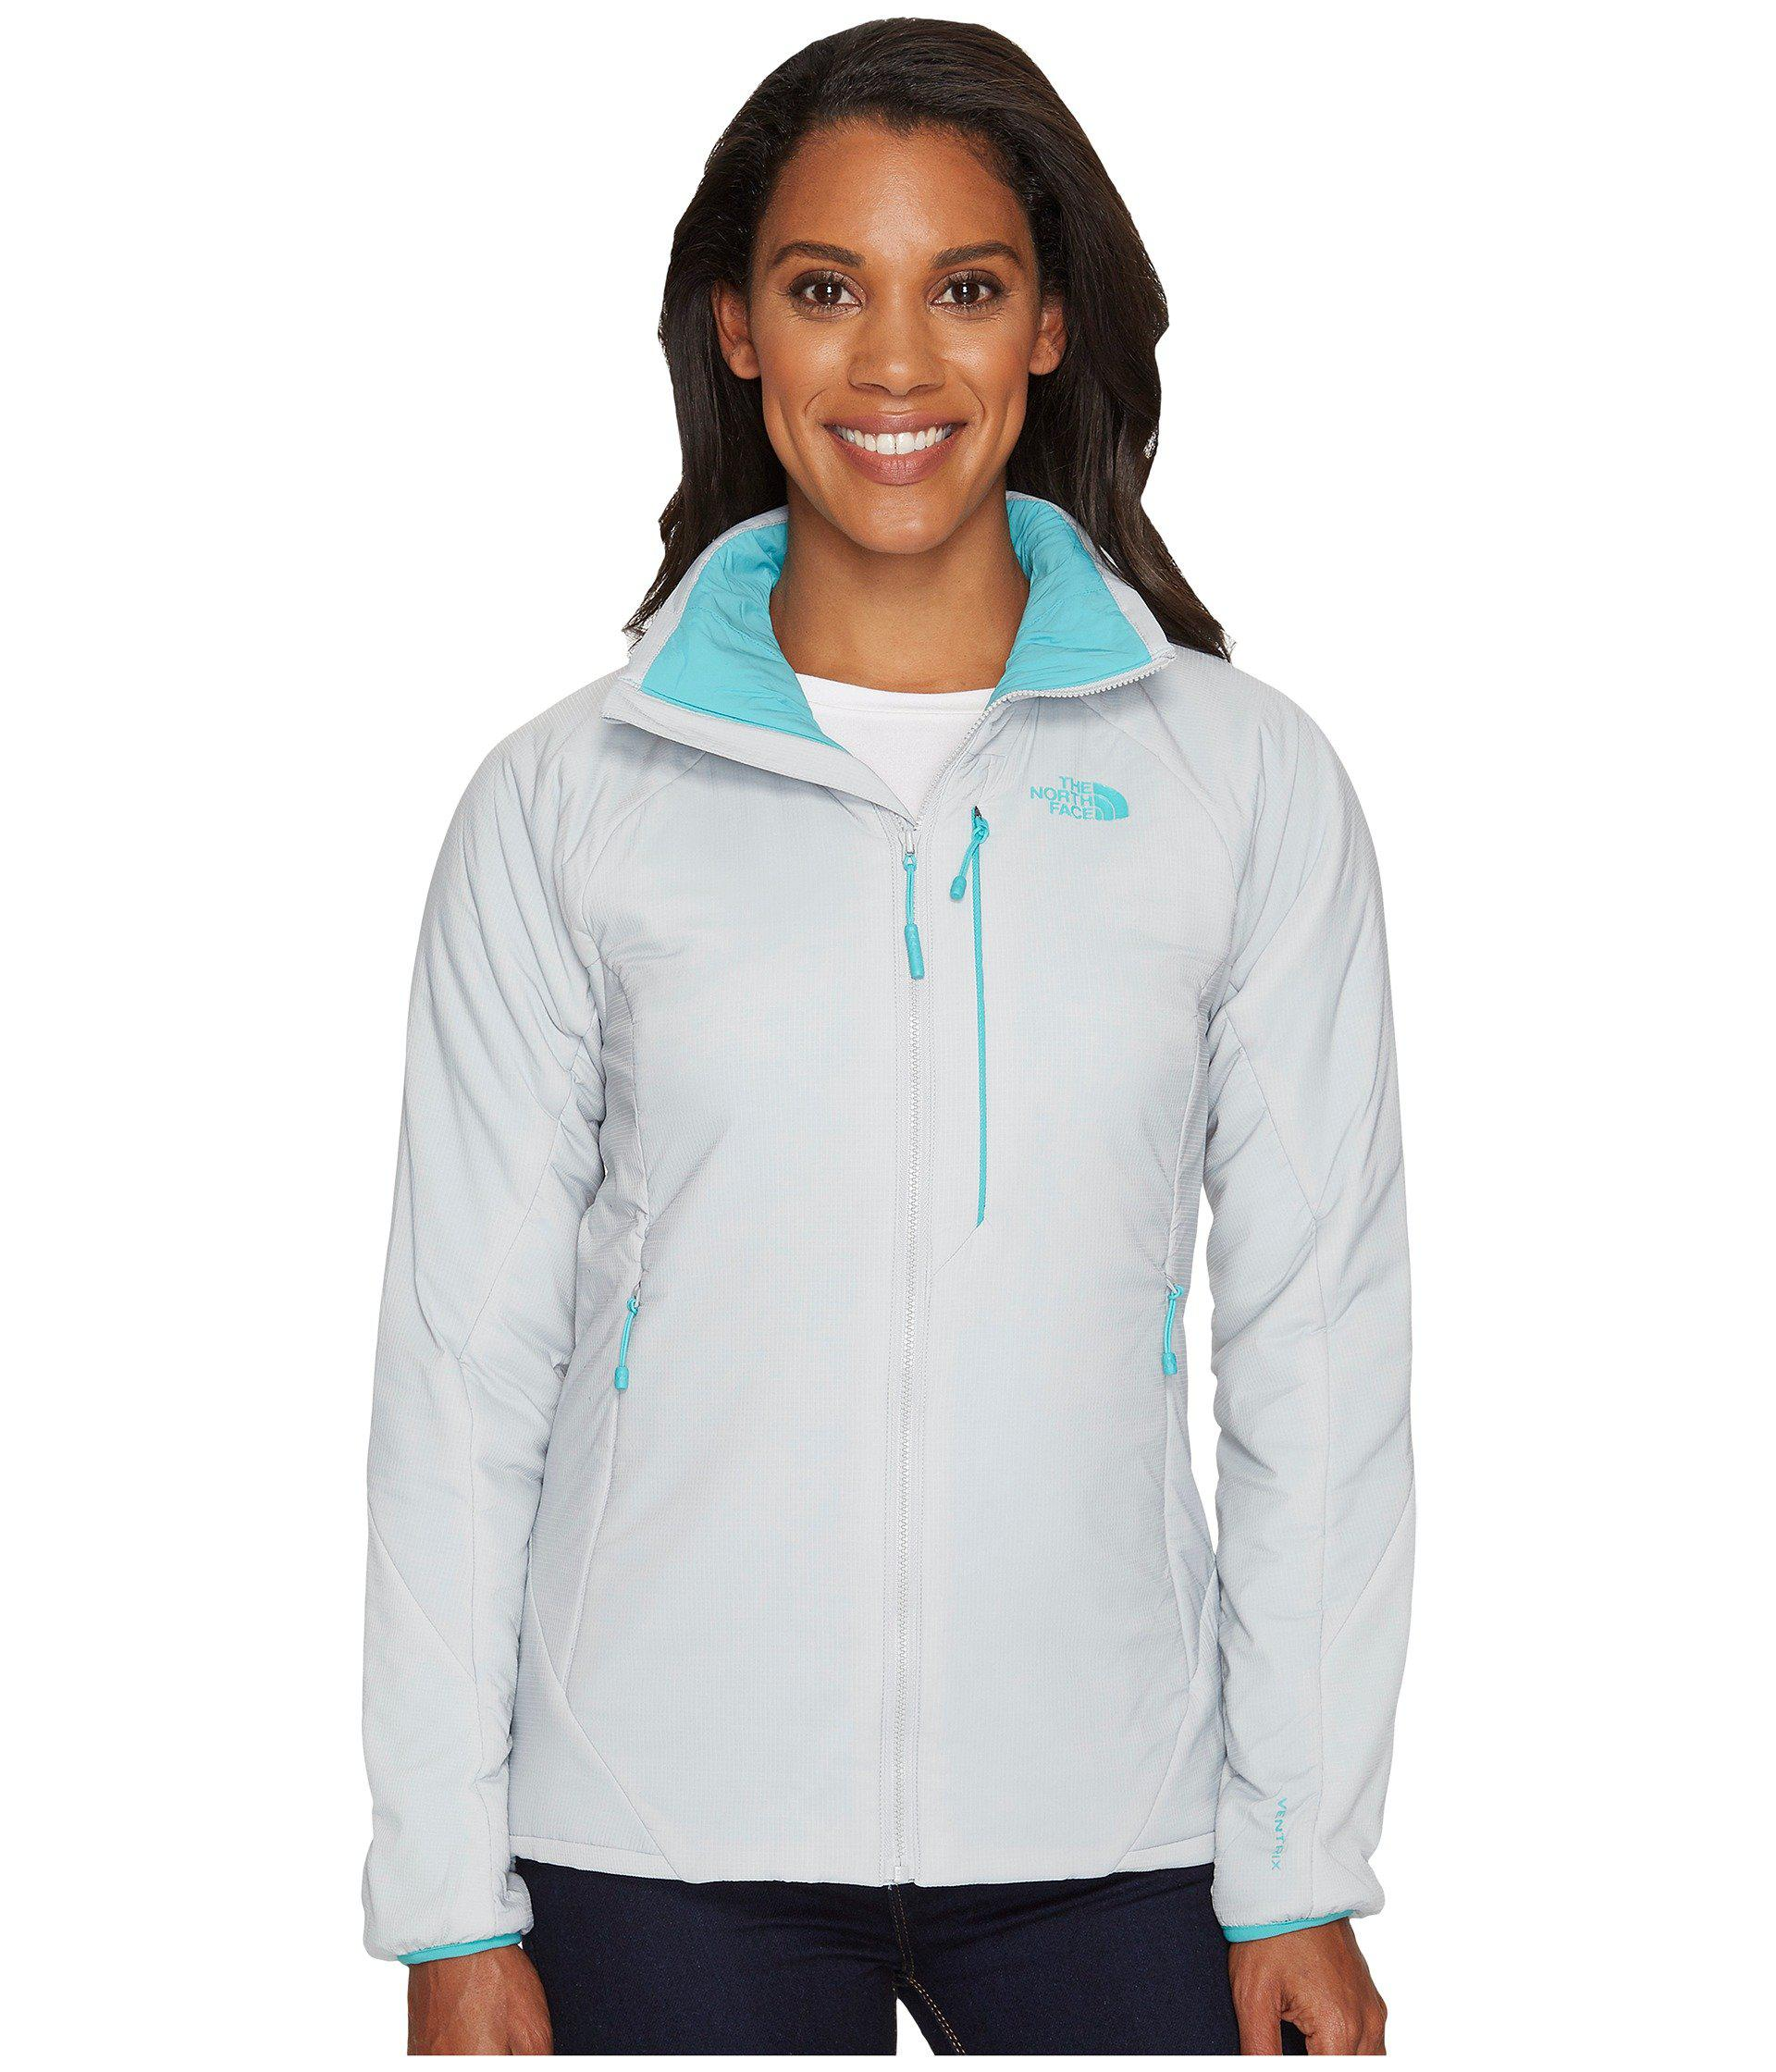 9a4029dba284 Lyst - The North Face Ventrix Jacket in Blue - Save 43%